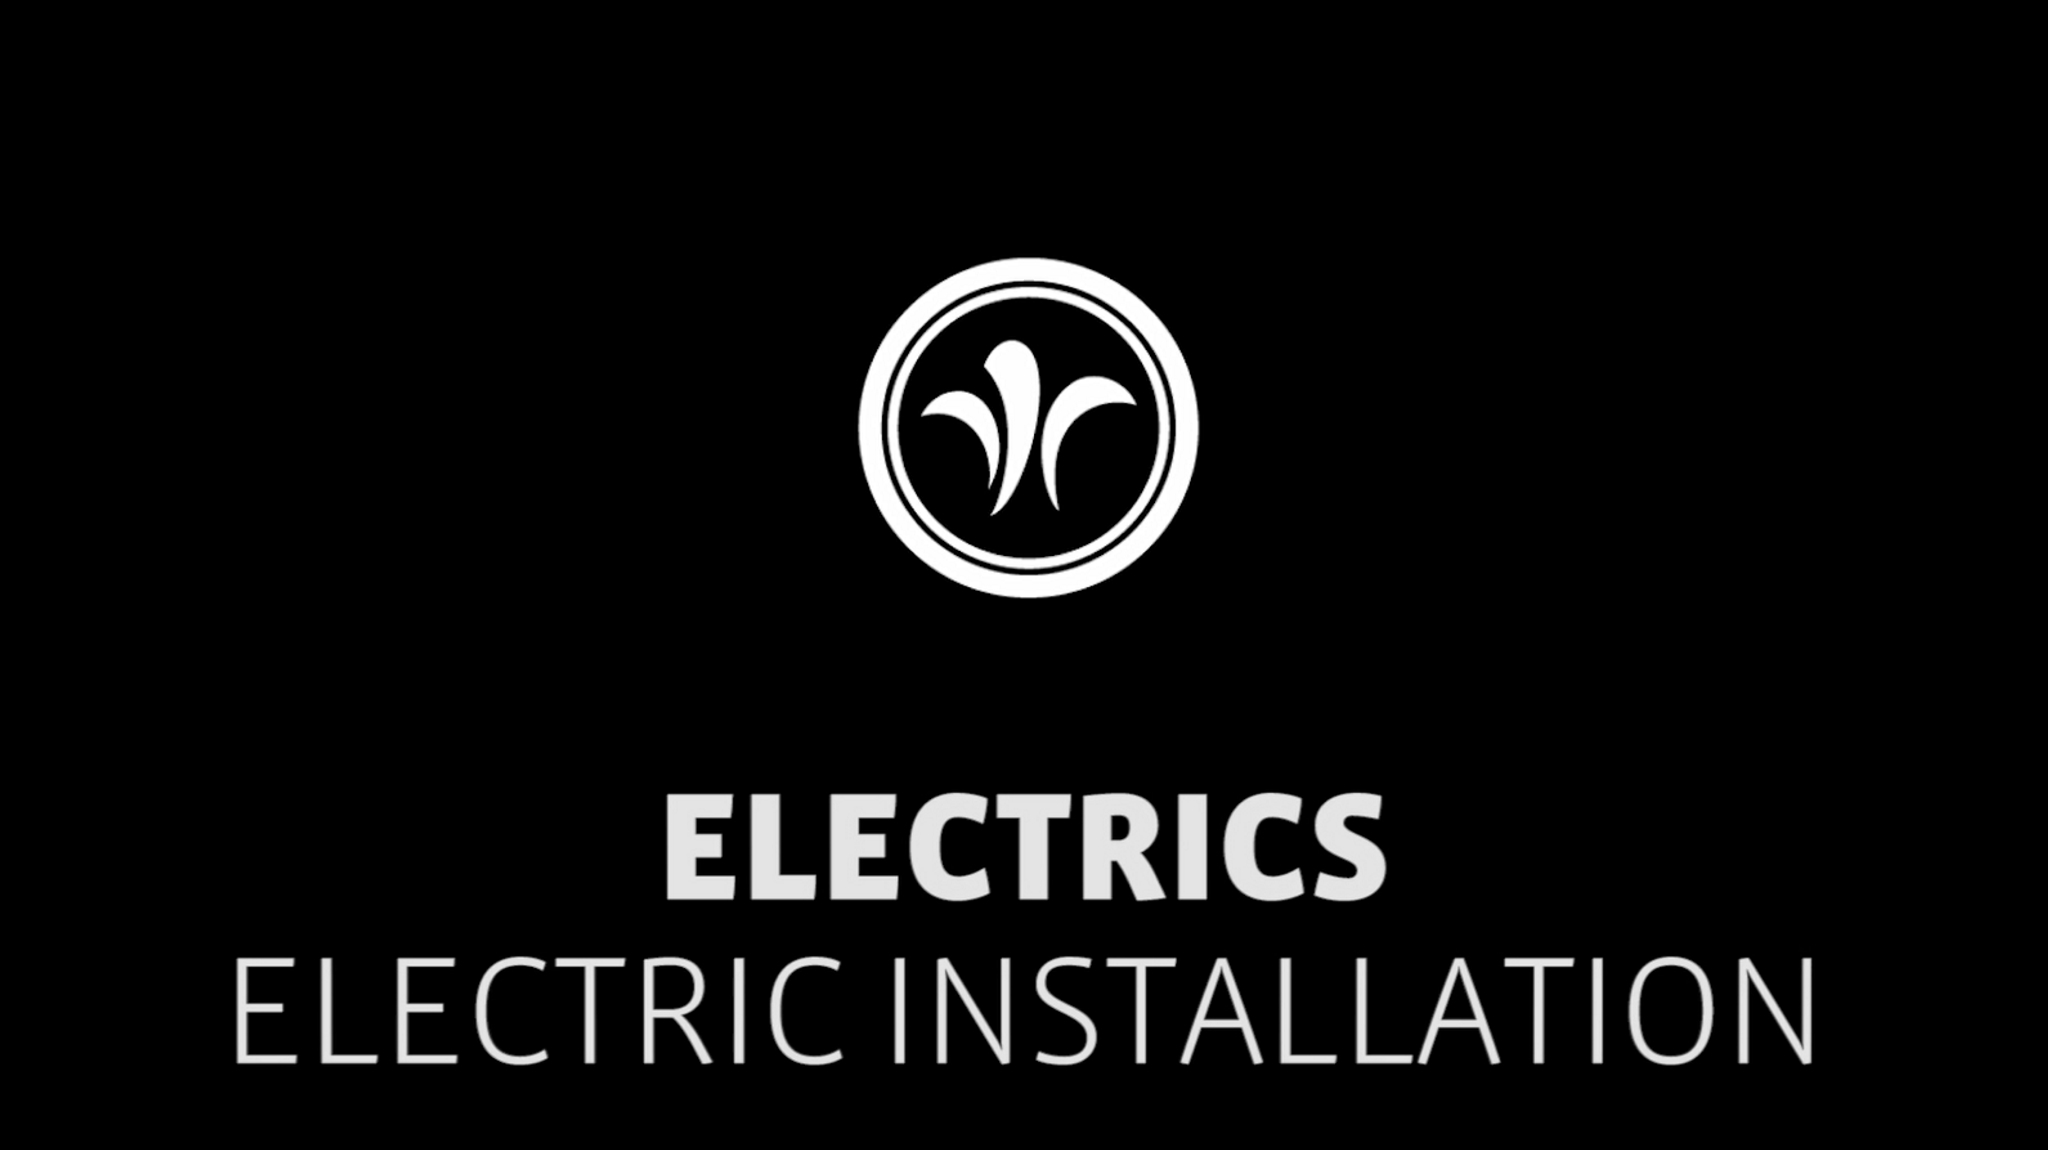 motorhome electric installation // niesmann+bischoff - luxury motorhome (model FLAIR) // 2019 // EL8